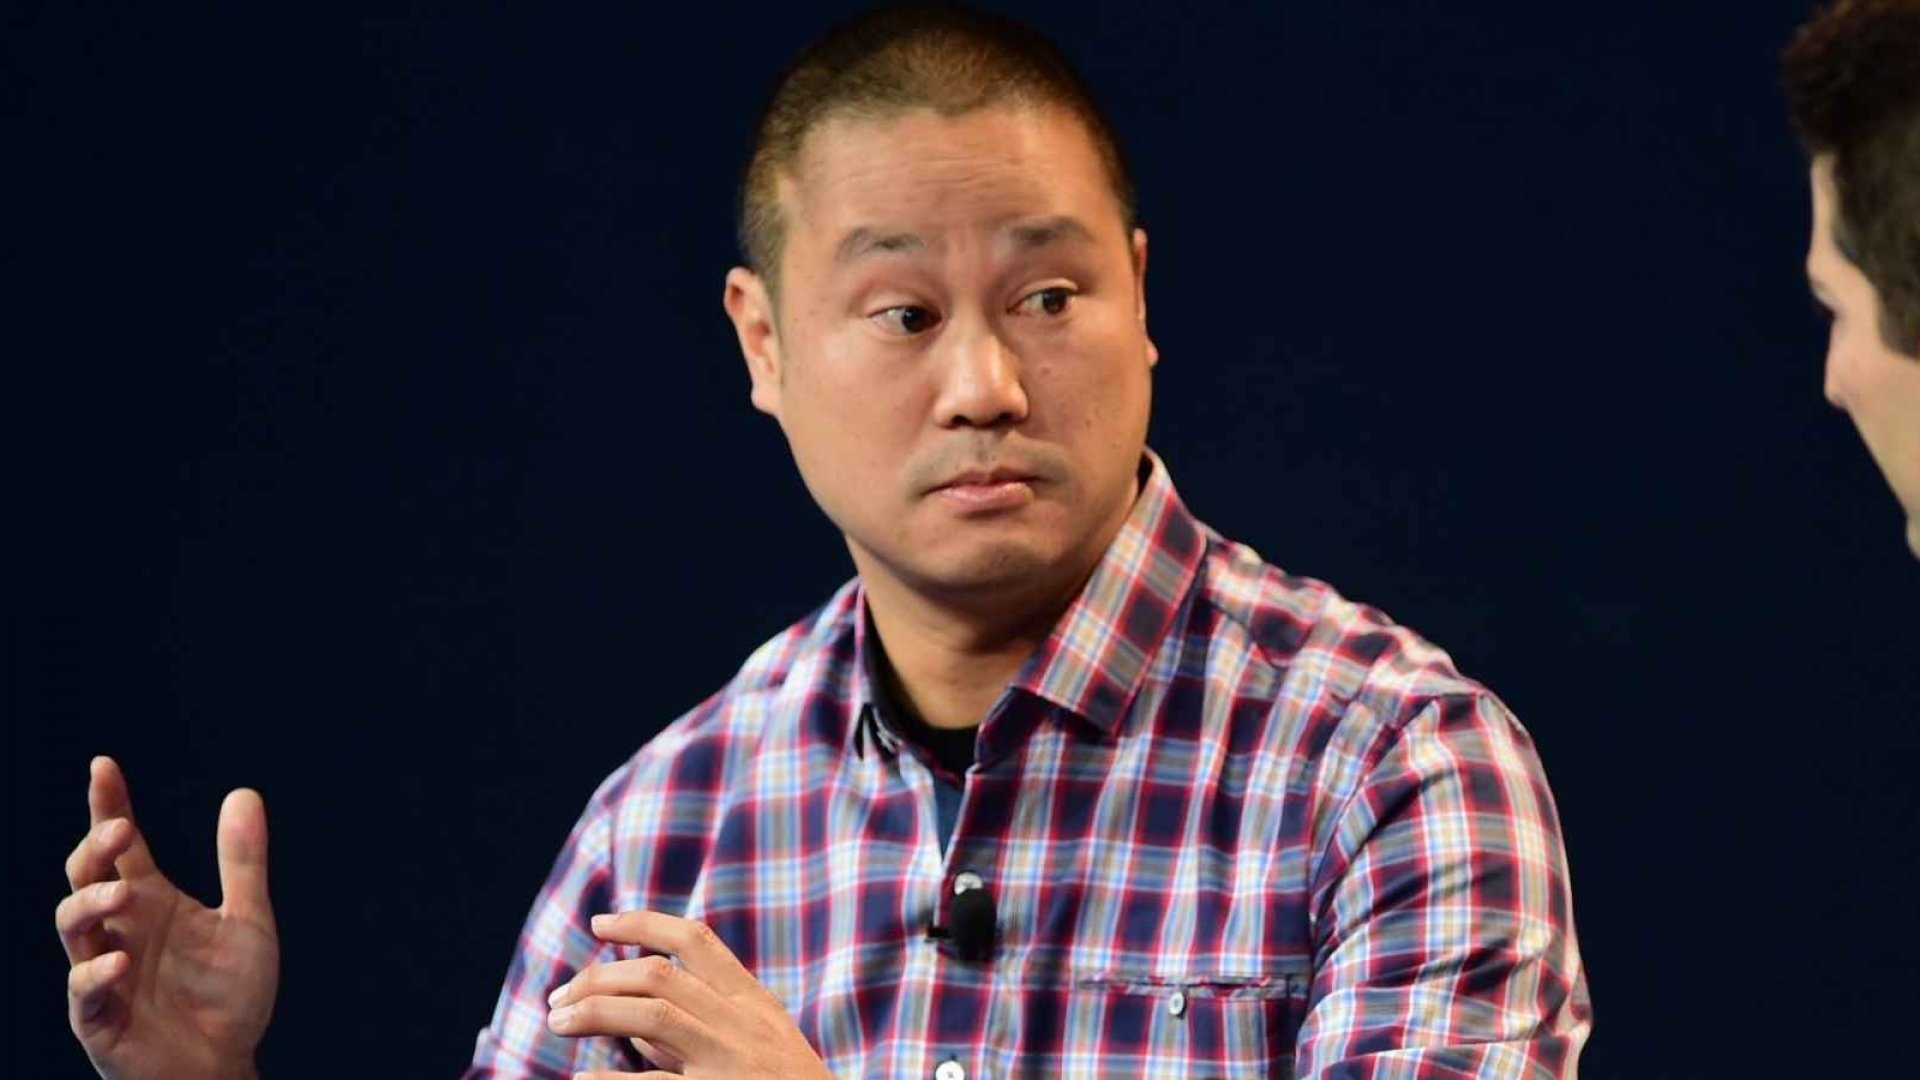 Tony Hsieh, a good questioner.